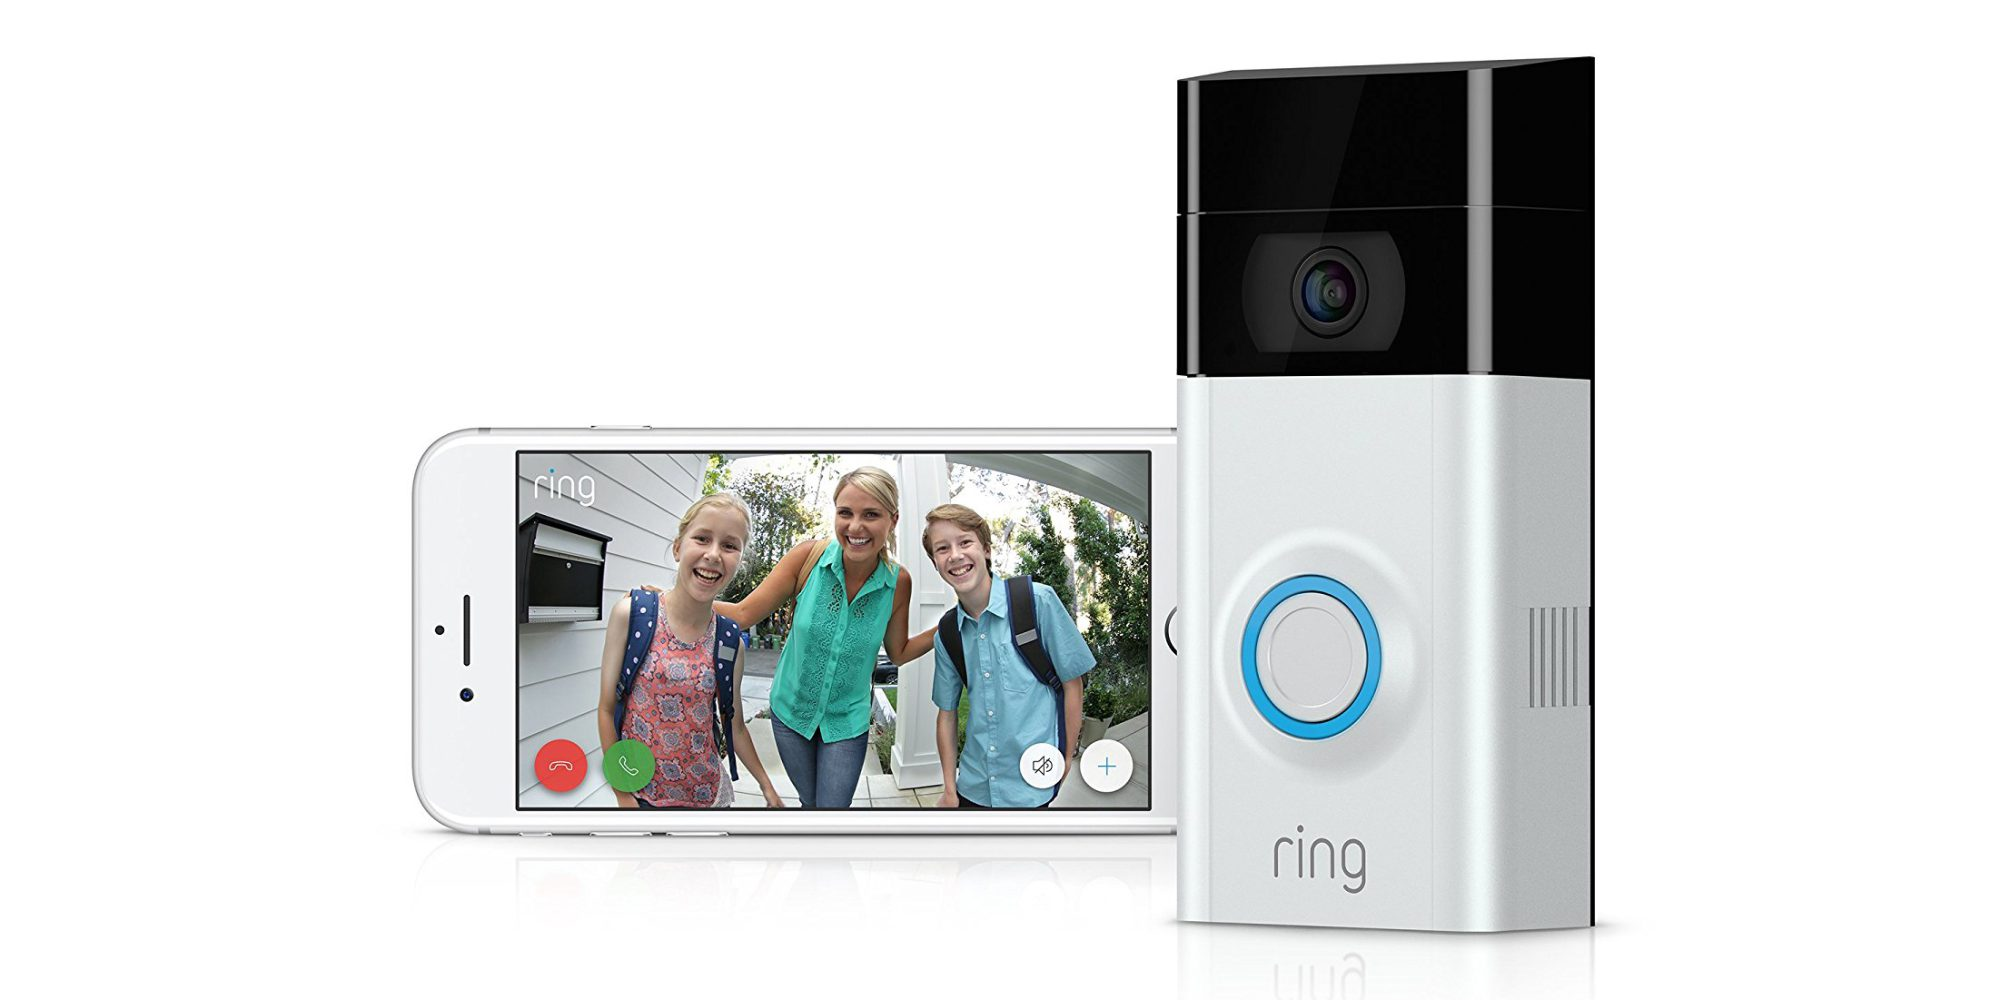 9to5toys Last Call Tp Link Smart Switch 2 Pack 45 Ring Doorbell Waterproof Xl 55inch The